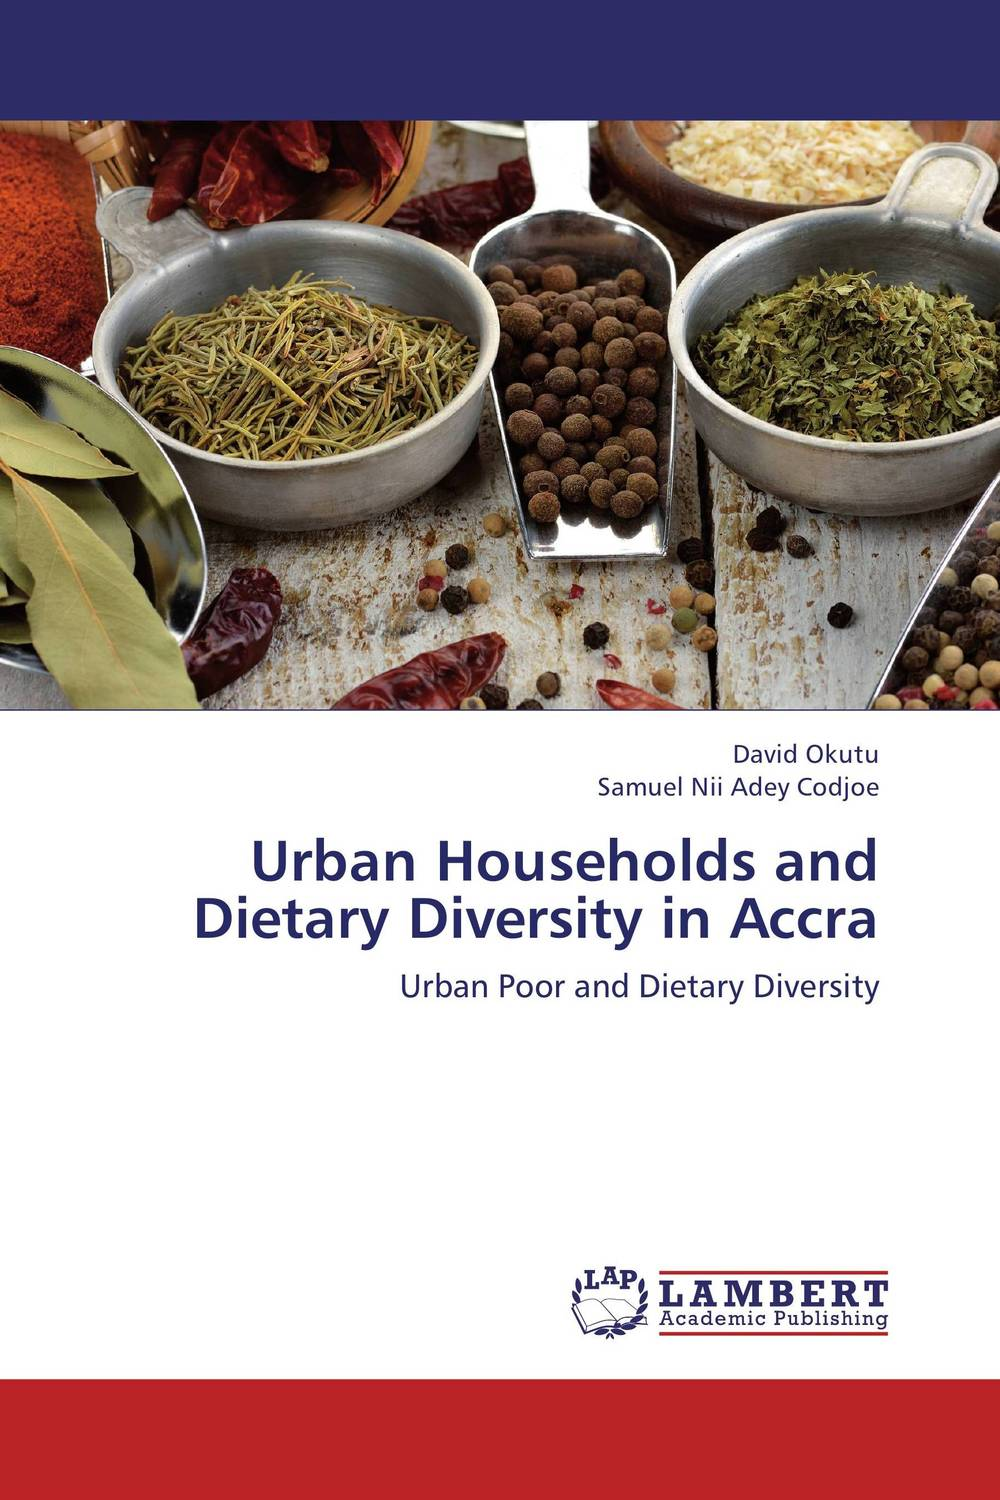 Urban Households and Dietary Diversity in Accra coelho p manuscript found in accra